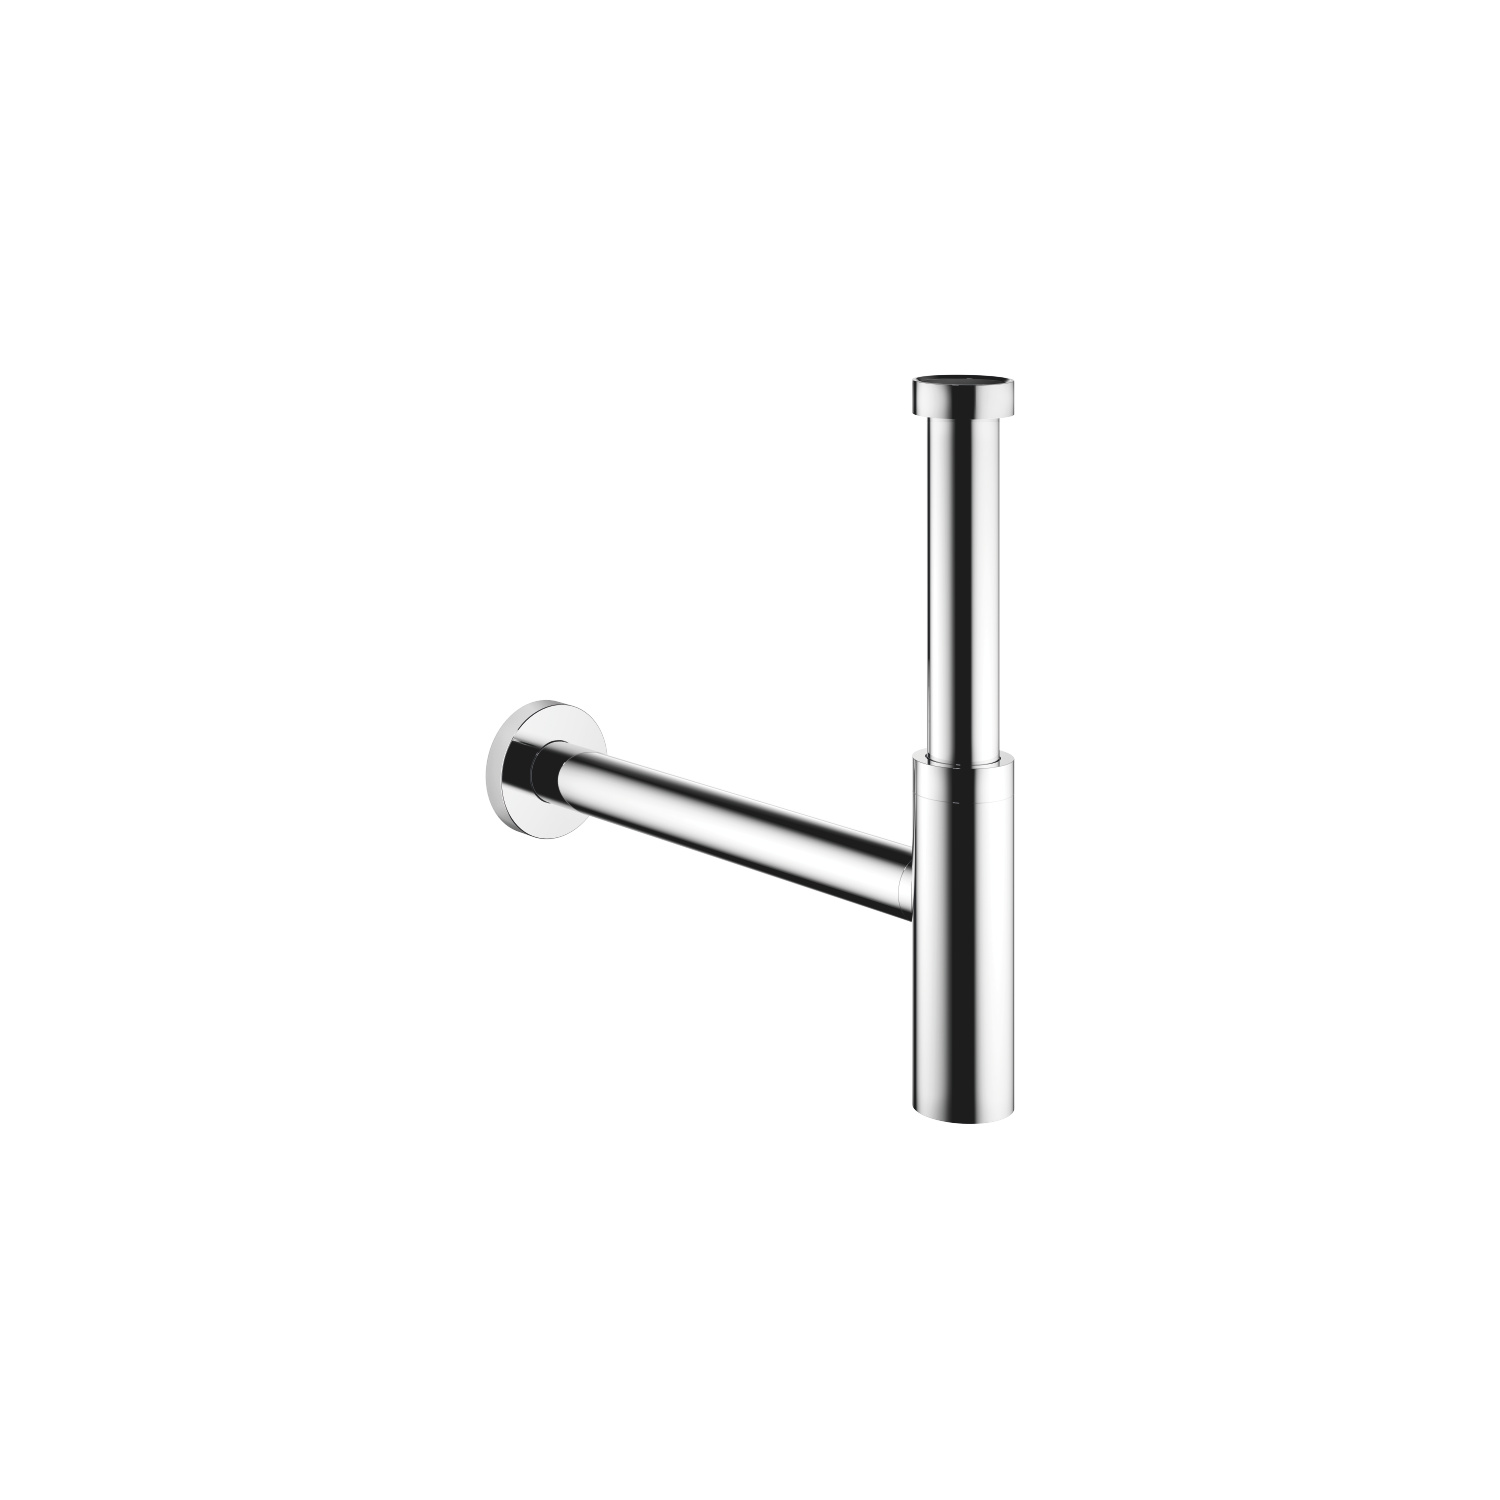 Lavatory siphon - polished chrome - 10 060 970-00